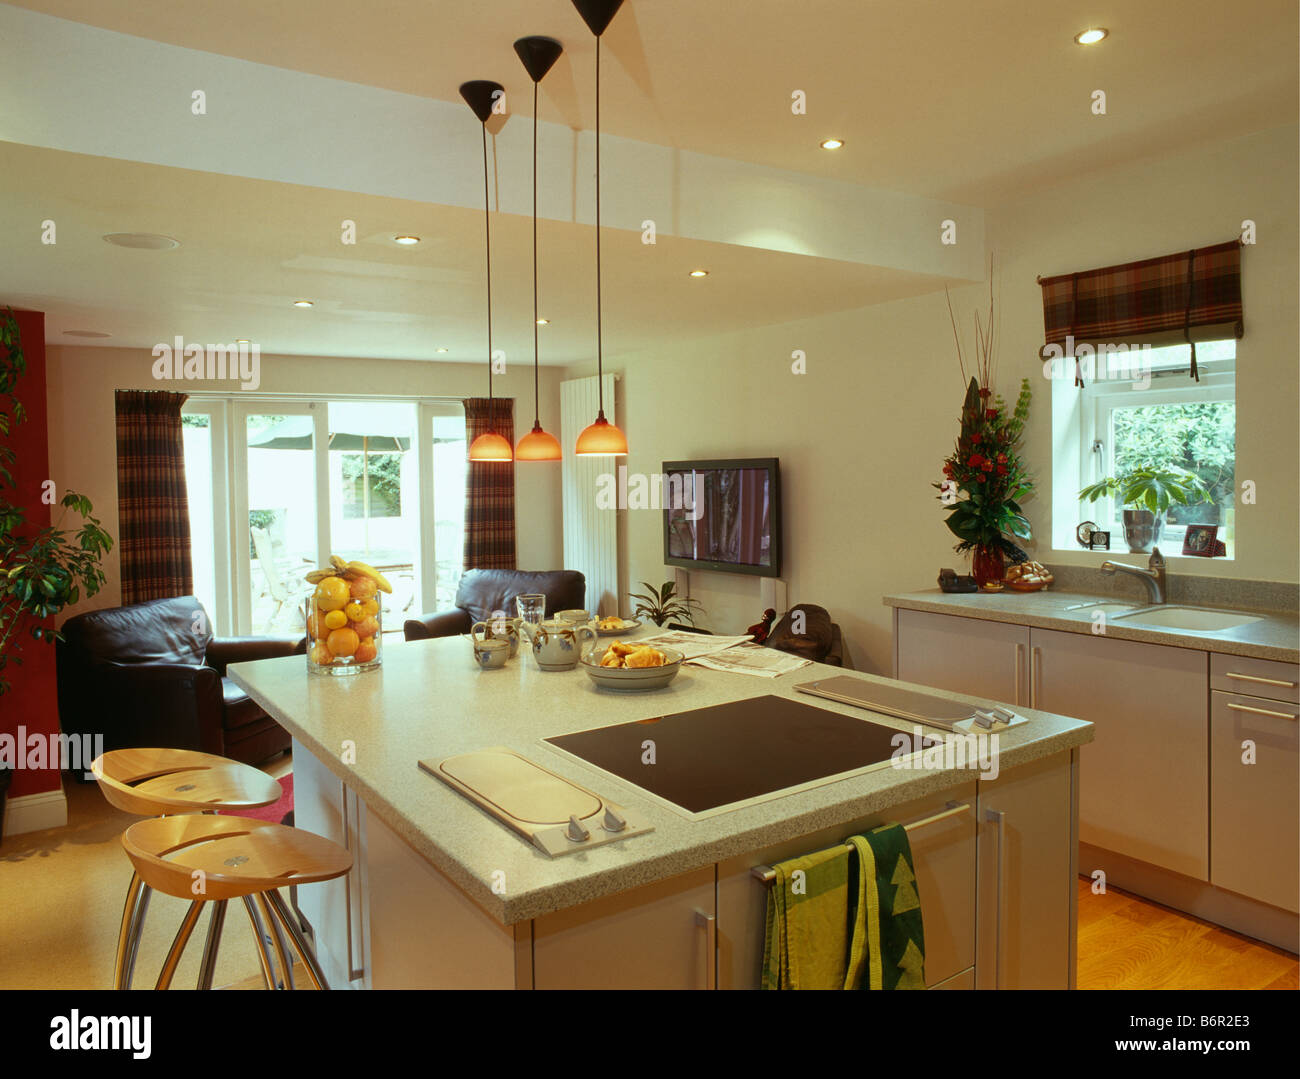 Kitchen Lights Over Island Small Orange Pendant Lights Above Island Unit With Fitted